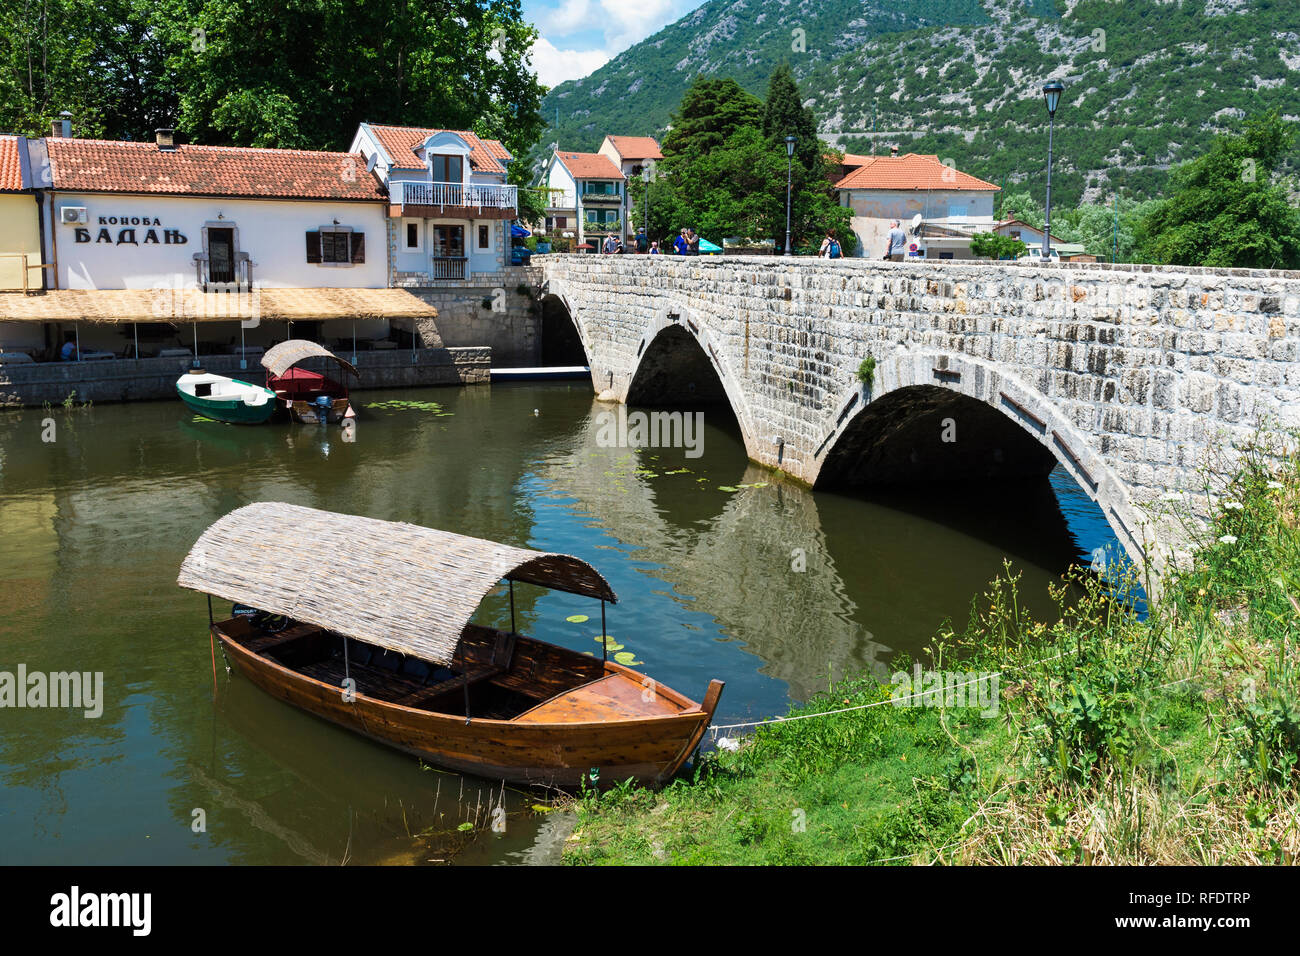 Tourist boat anchored near a Roman bridge, Skadar Lake, Virpazar, Montenegro - Stock Image